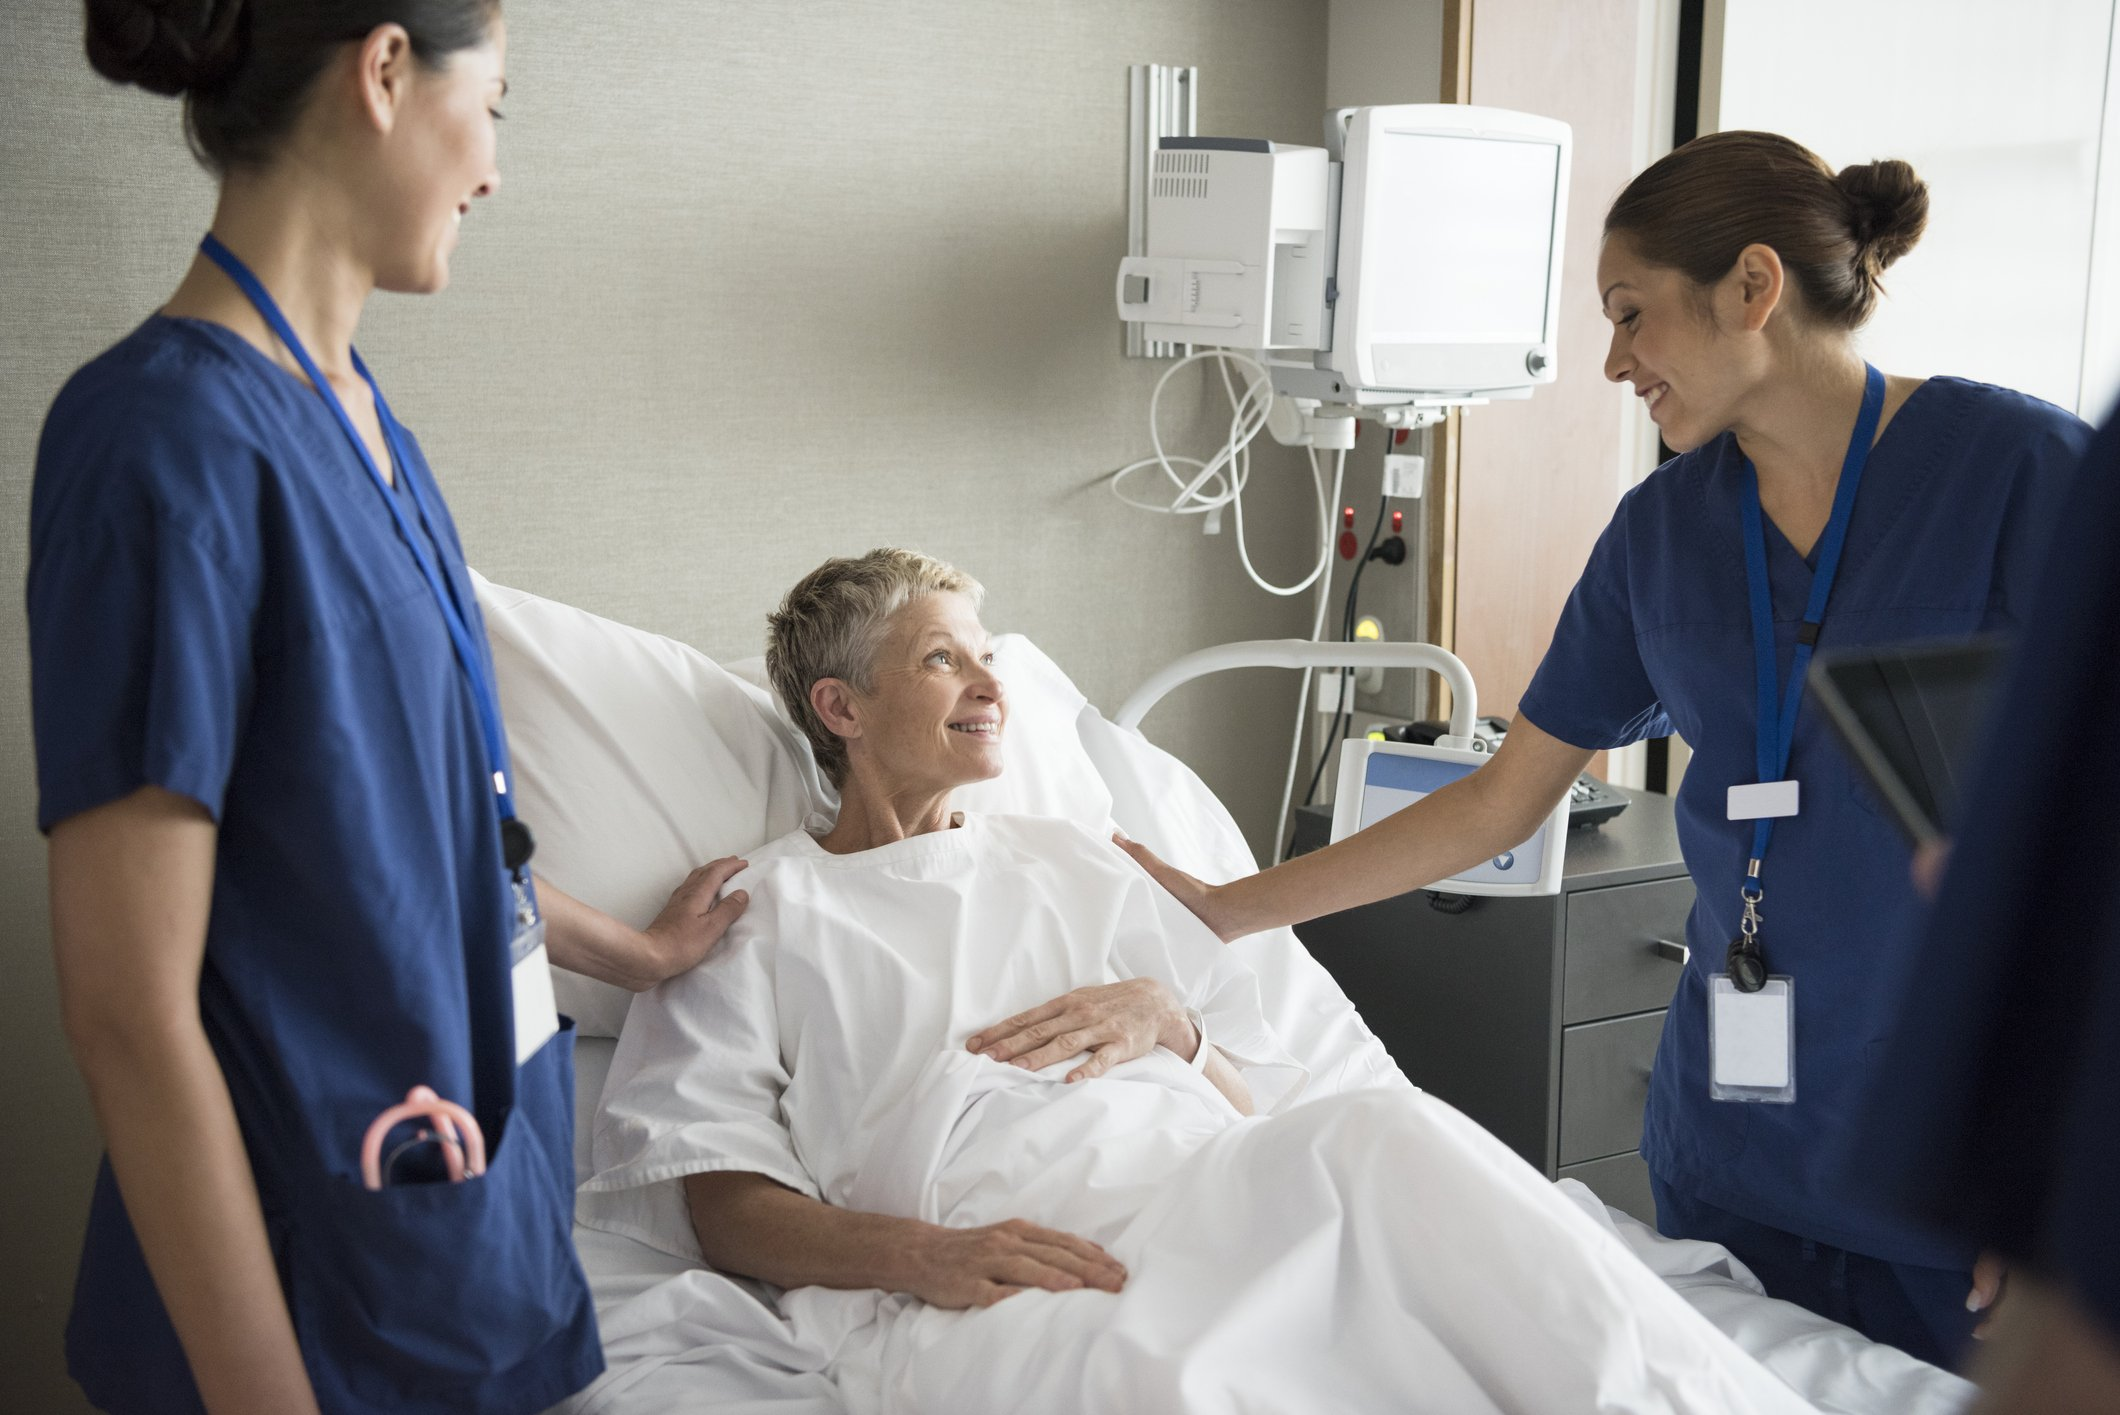 Doctors visiting a patient in the hospital